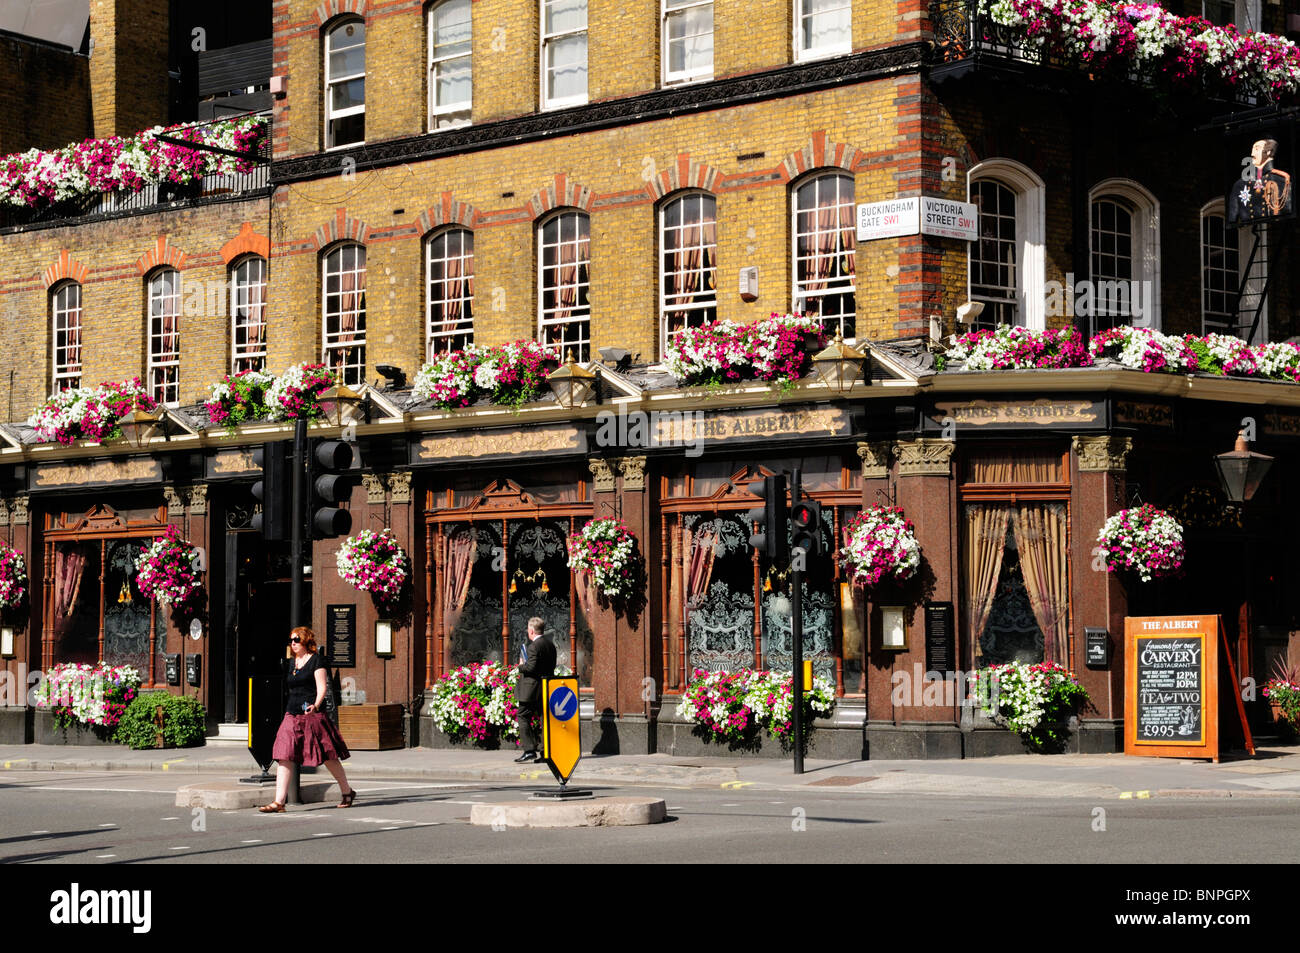 The Albert Pub in Victoria Street, Westminster, London, England, UK - Stock Image